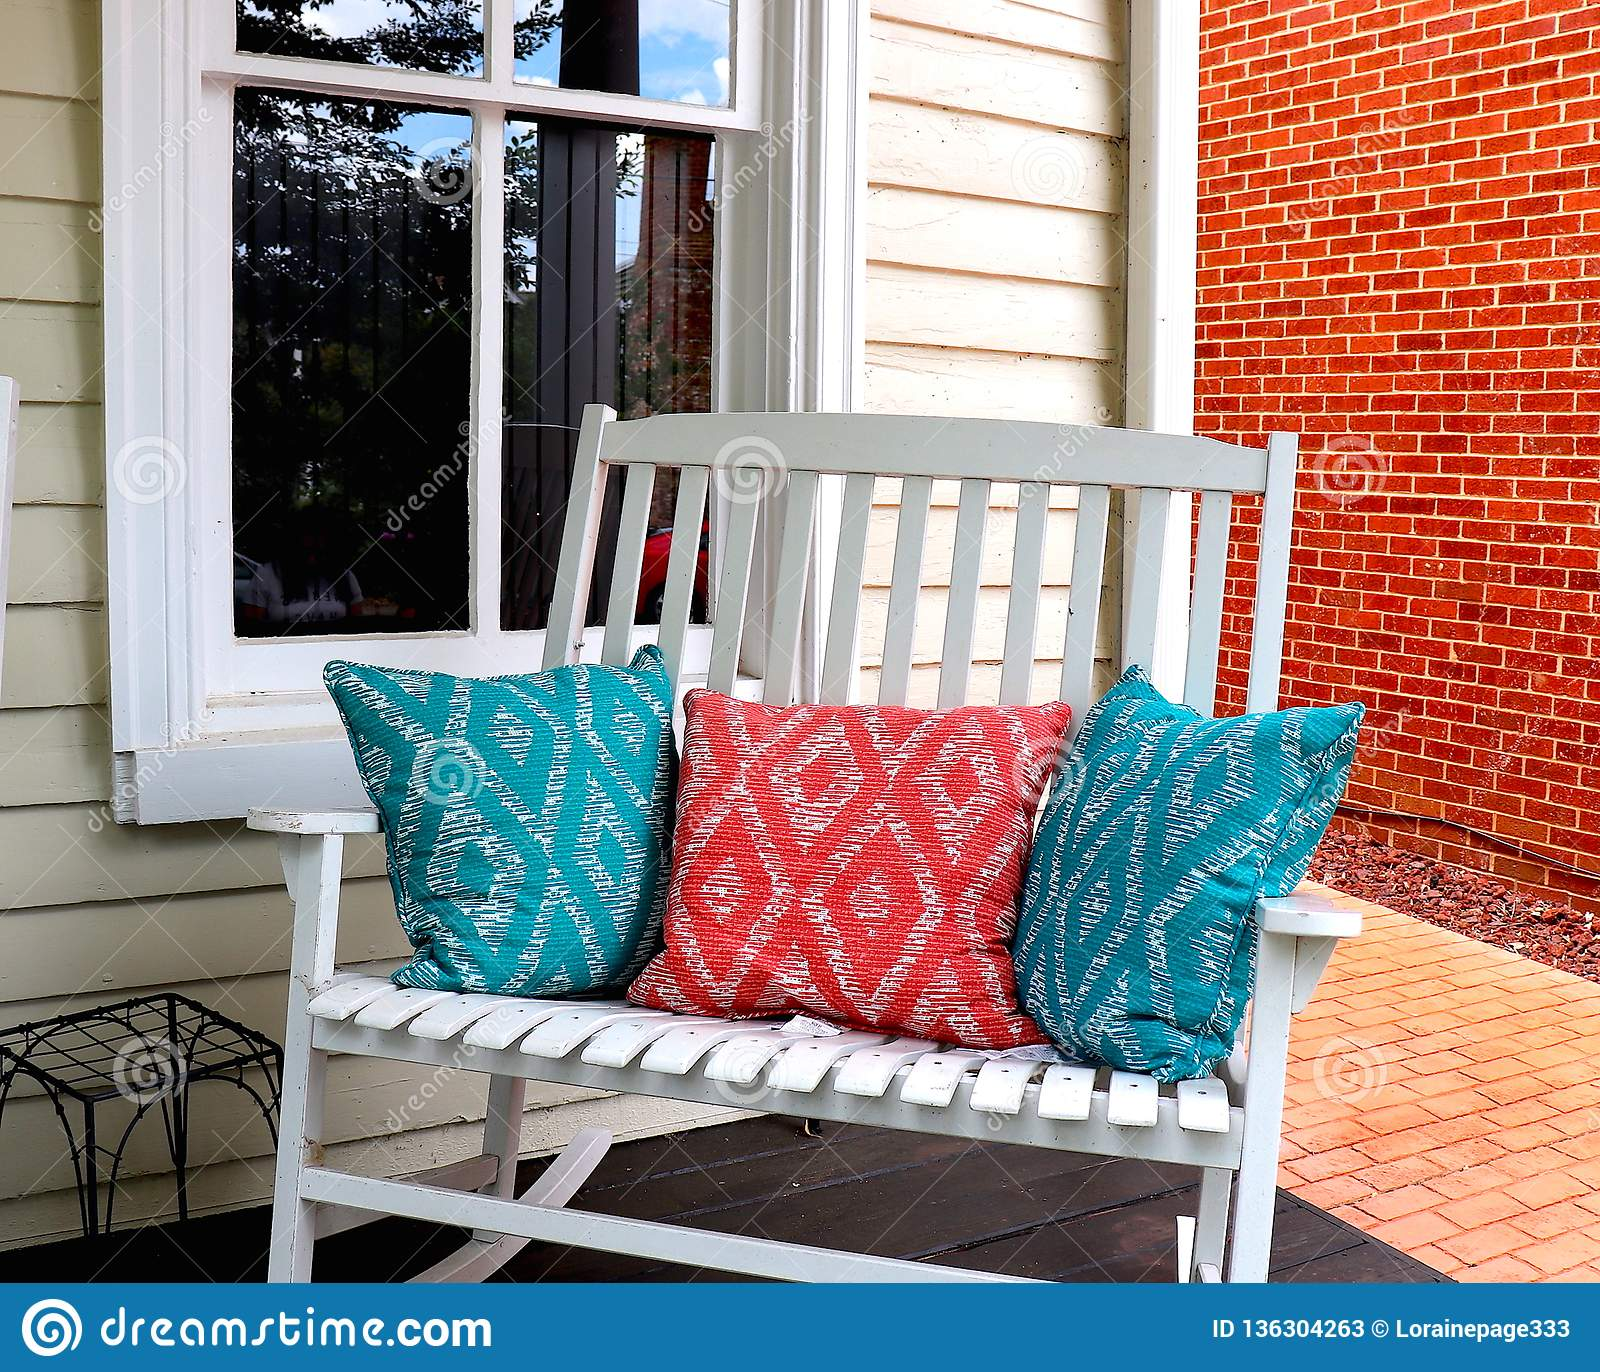 Image of: Front Porch Rocker And Pillows Stock Image Image Of Wooden Double 136304263